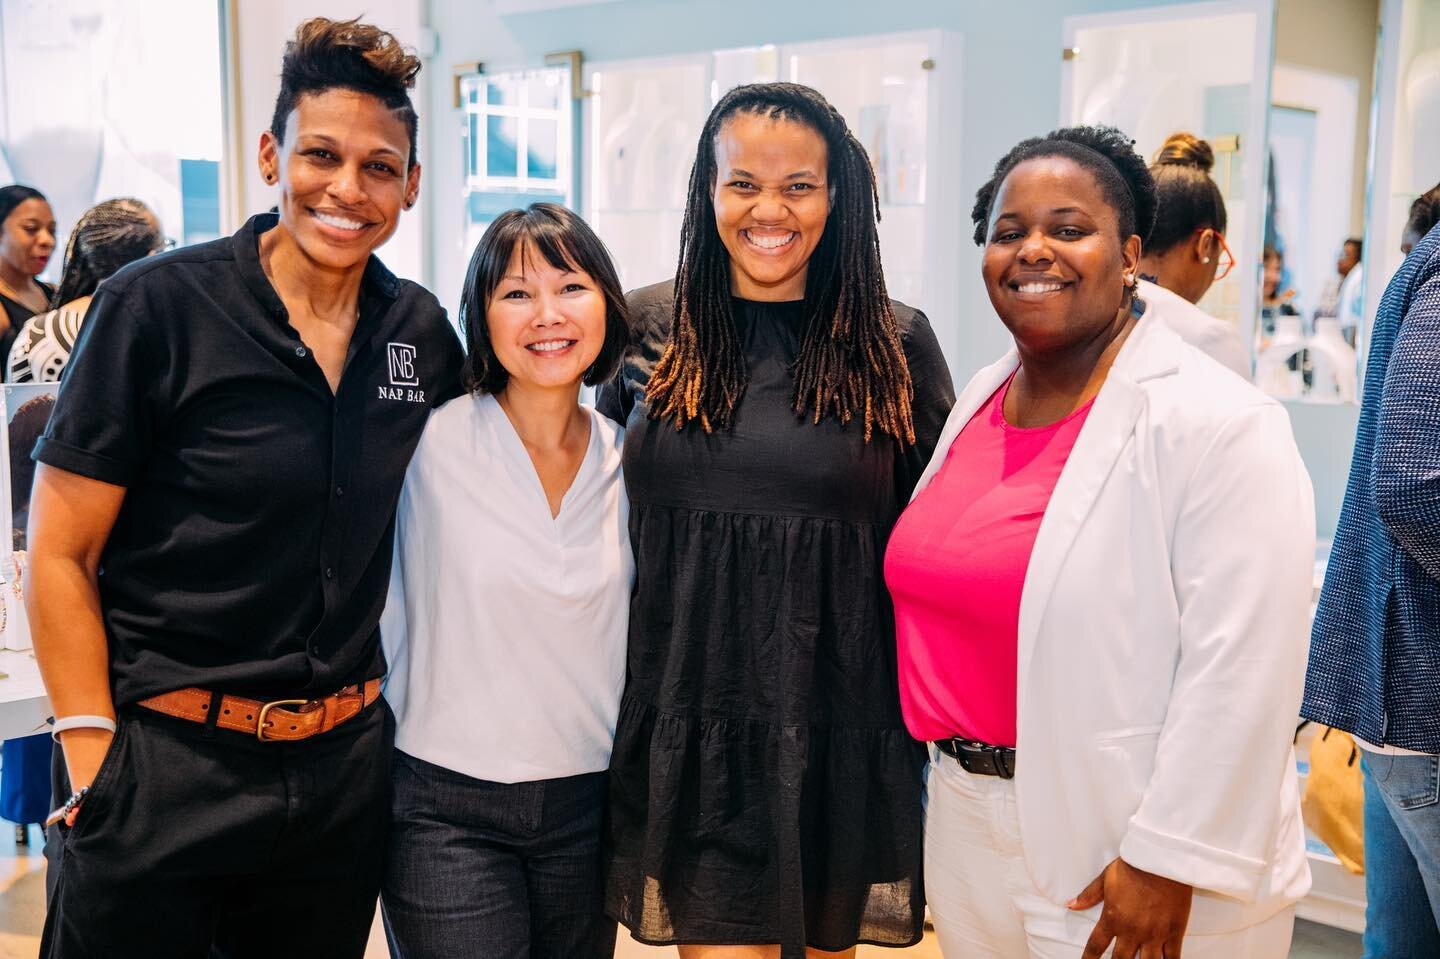 Donate to DivInc - DivInc is a 501(c)(3) nonprofit organization. Your donation will directly support our mission, to empower people of color and women entrepreneurs, helping them build successful high growth businesses by providing them with access to education, mentorship and vital networks.The evidence of what we do can be seen in our incredibly talented alumni and our annual awards event, Champions of Change.